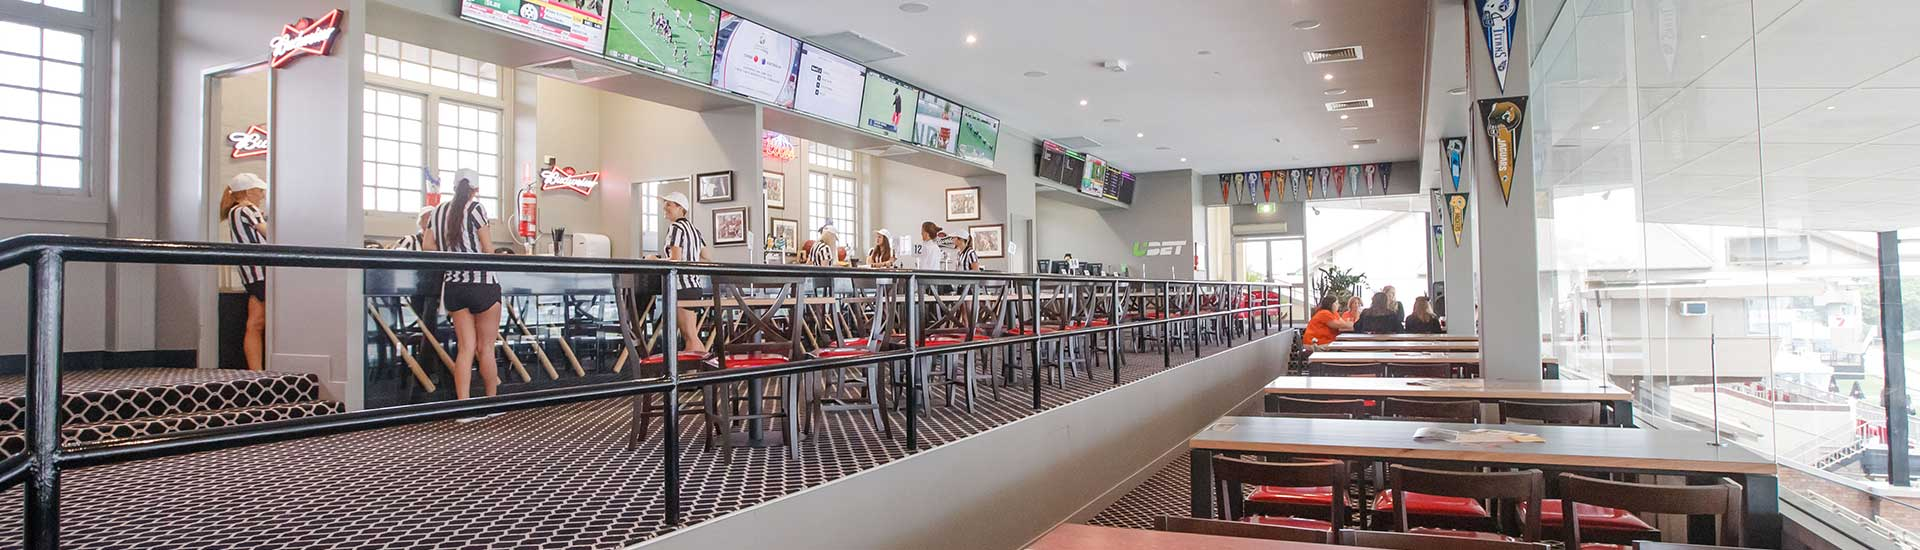 Kentucky Sports Bar is the perfect location for your function, providing prime viewing for racedays, it is also the perfect space for cocktail events